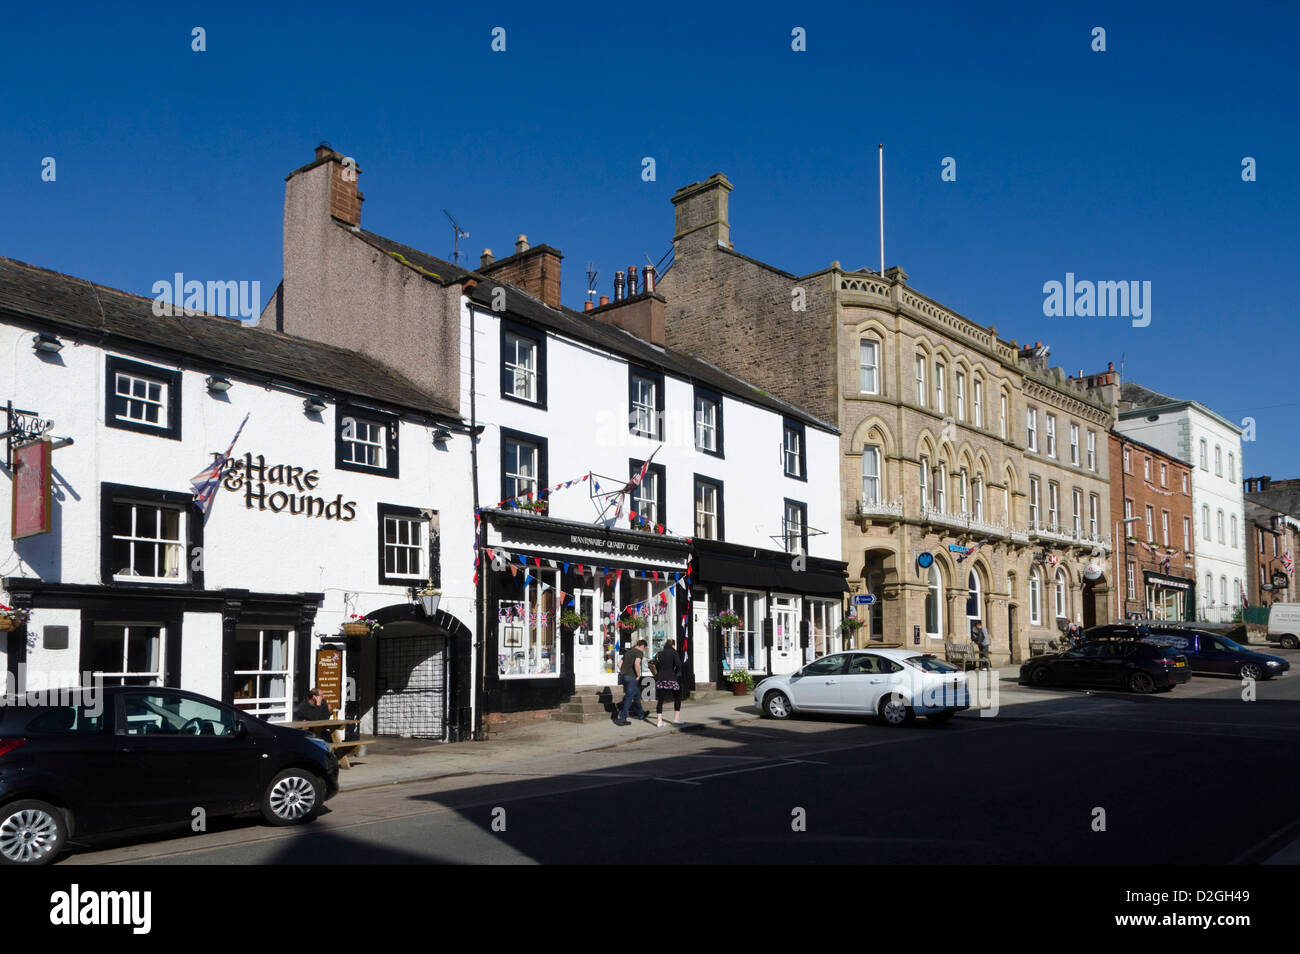 Hare and Hounds pub, Boroughgate, Appleby-in-Westmorland, Cumbria, England, Britain - Stock Image